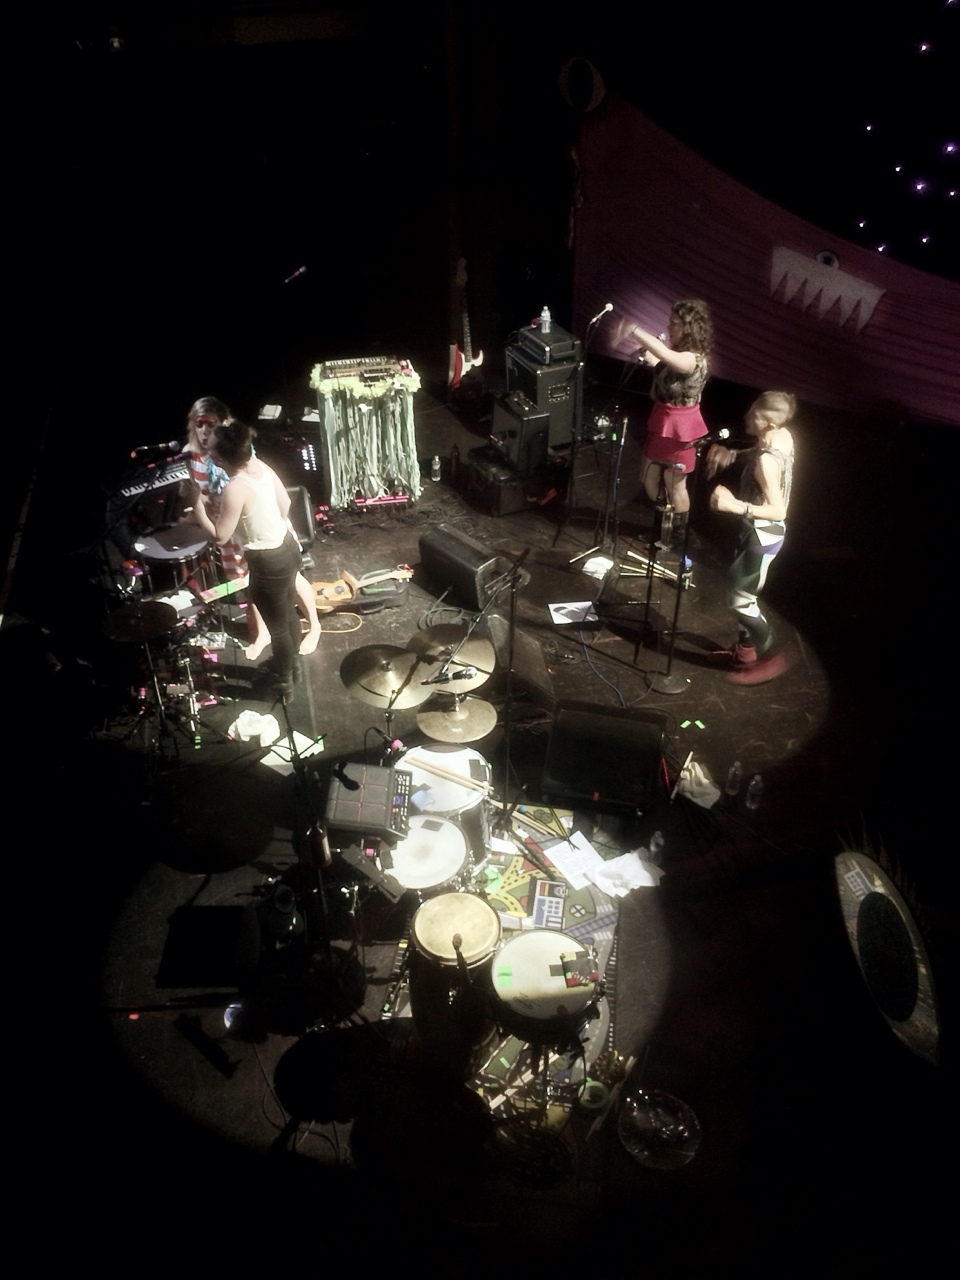 tune-yards from my vantage point last night…they nicely set me up in a room above the stage where I could get a good perspective for drawing.